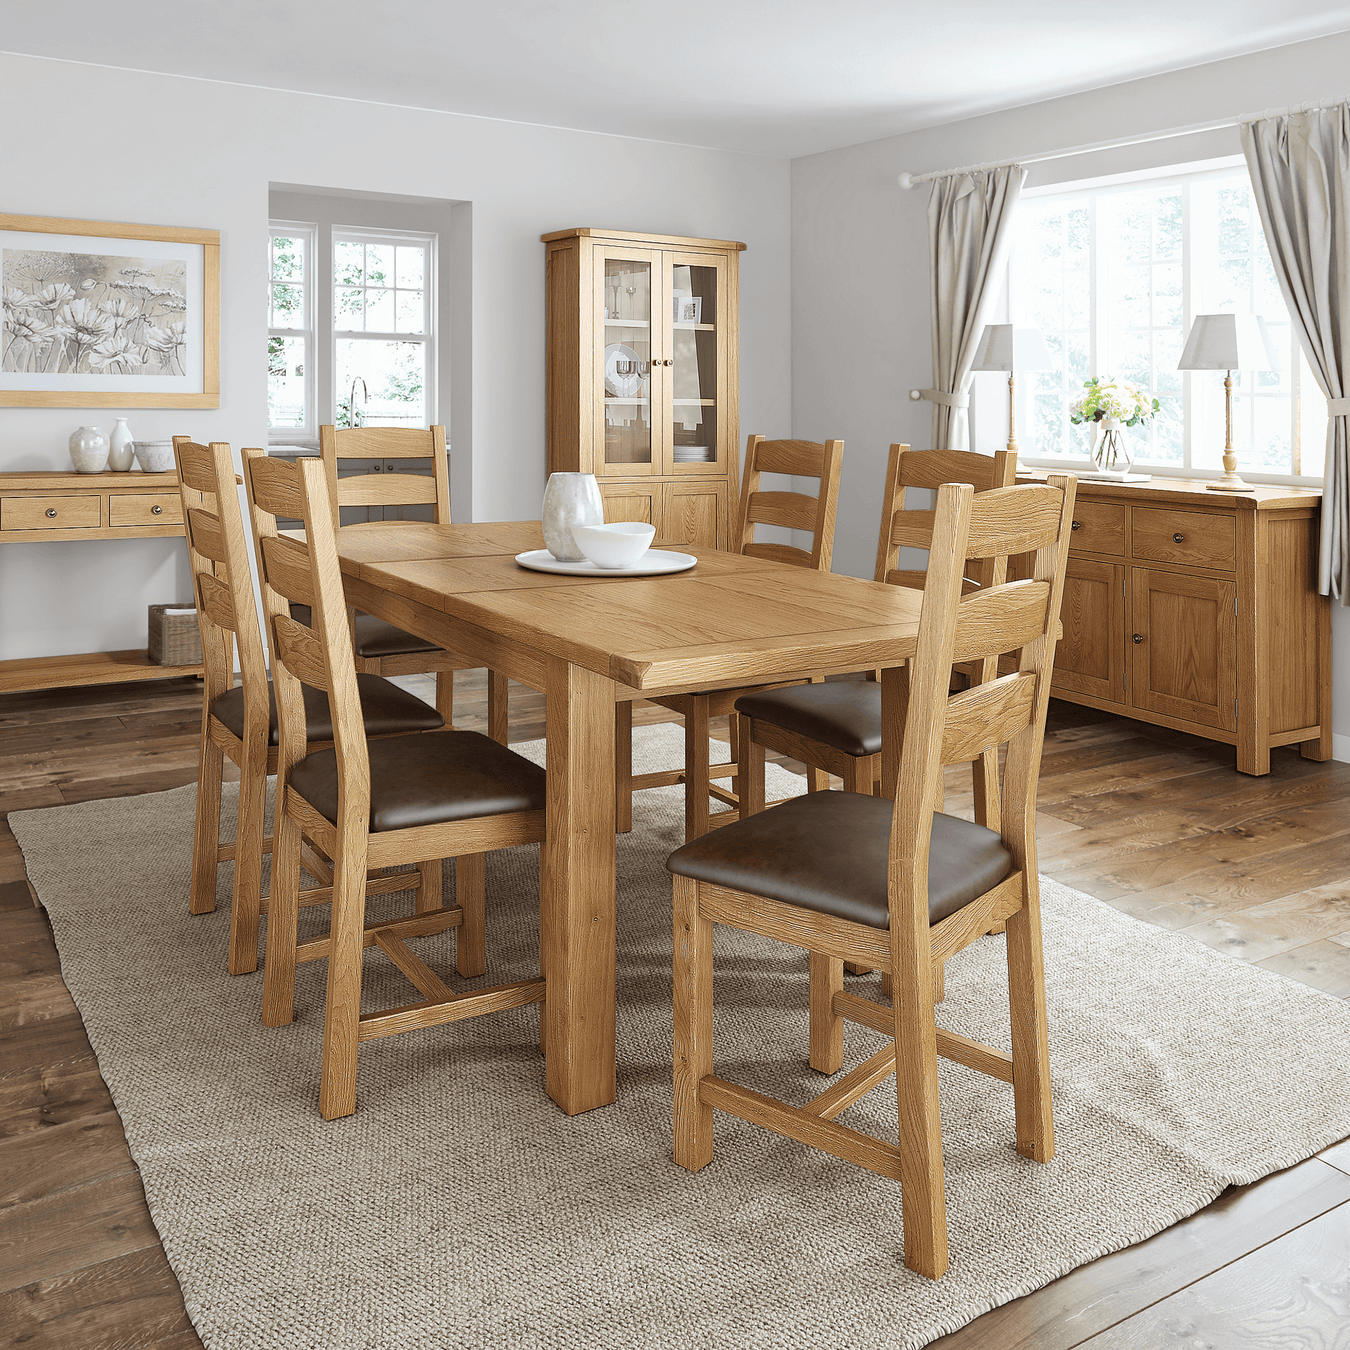 Sidmouth Oak Furniture